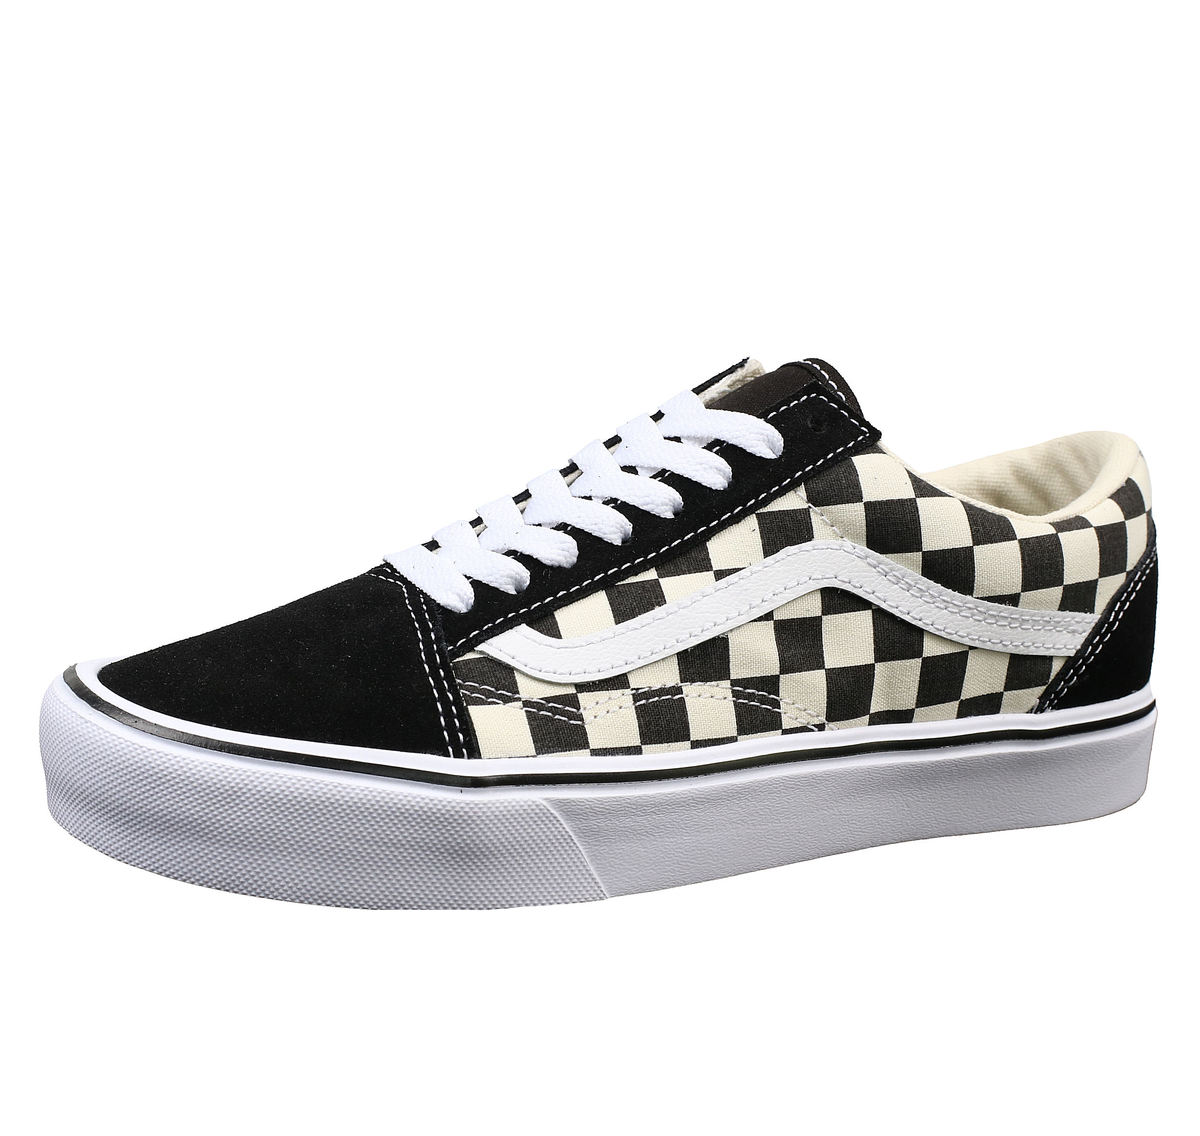 911d5e71626f47 boty VANS - UA OLD SKOOL LITE (Checkerboard) - Black  White - VA2Z5W5GX -  metal-shop.eu